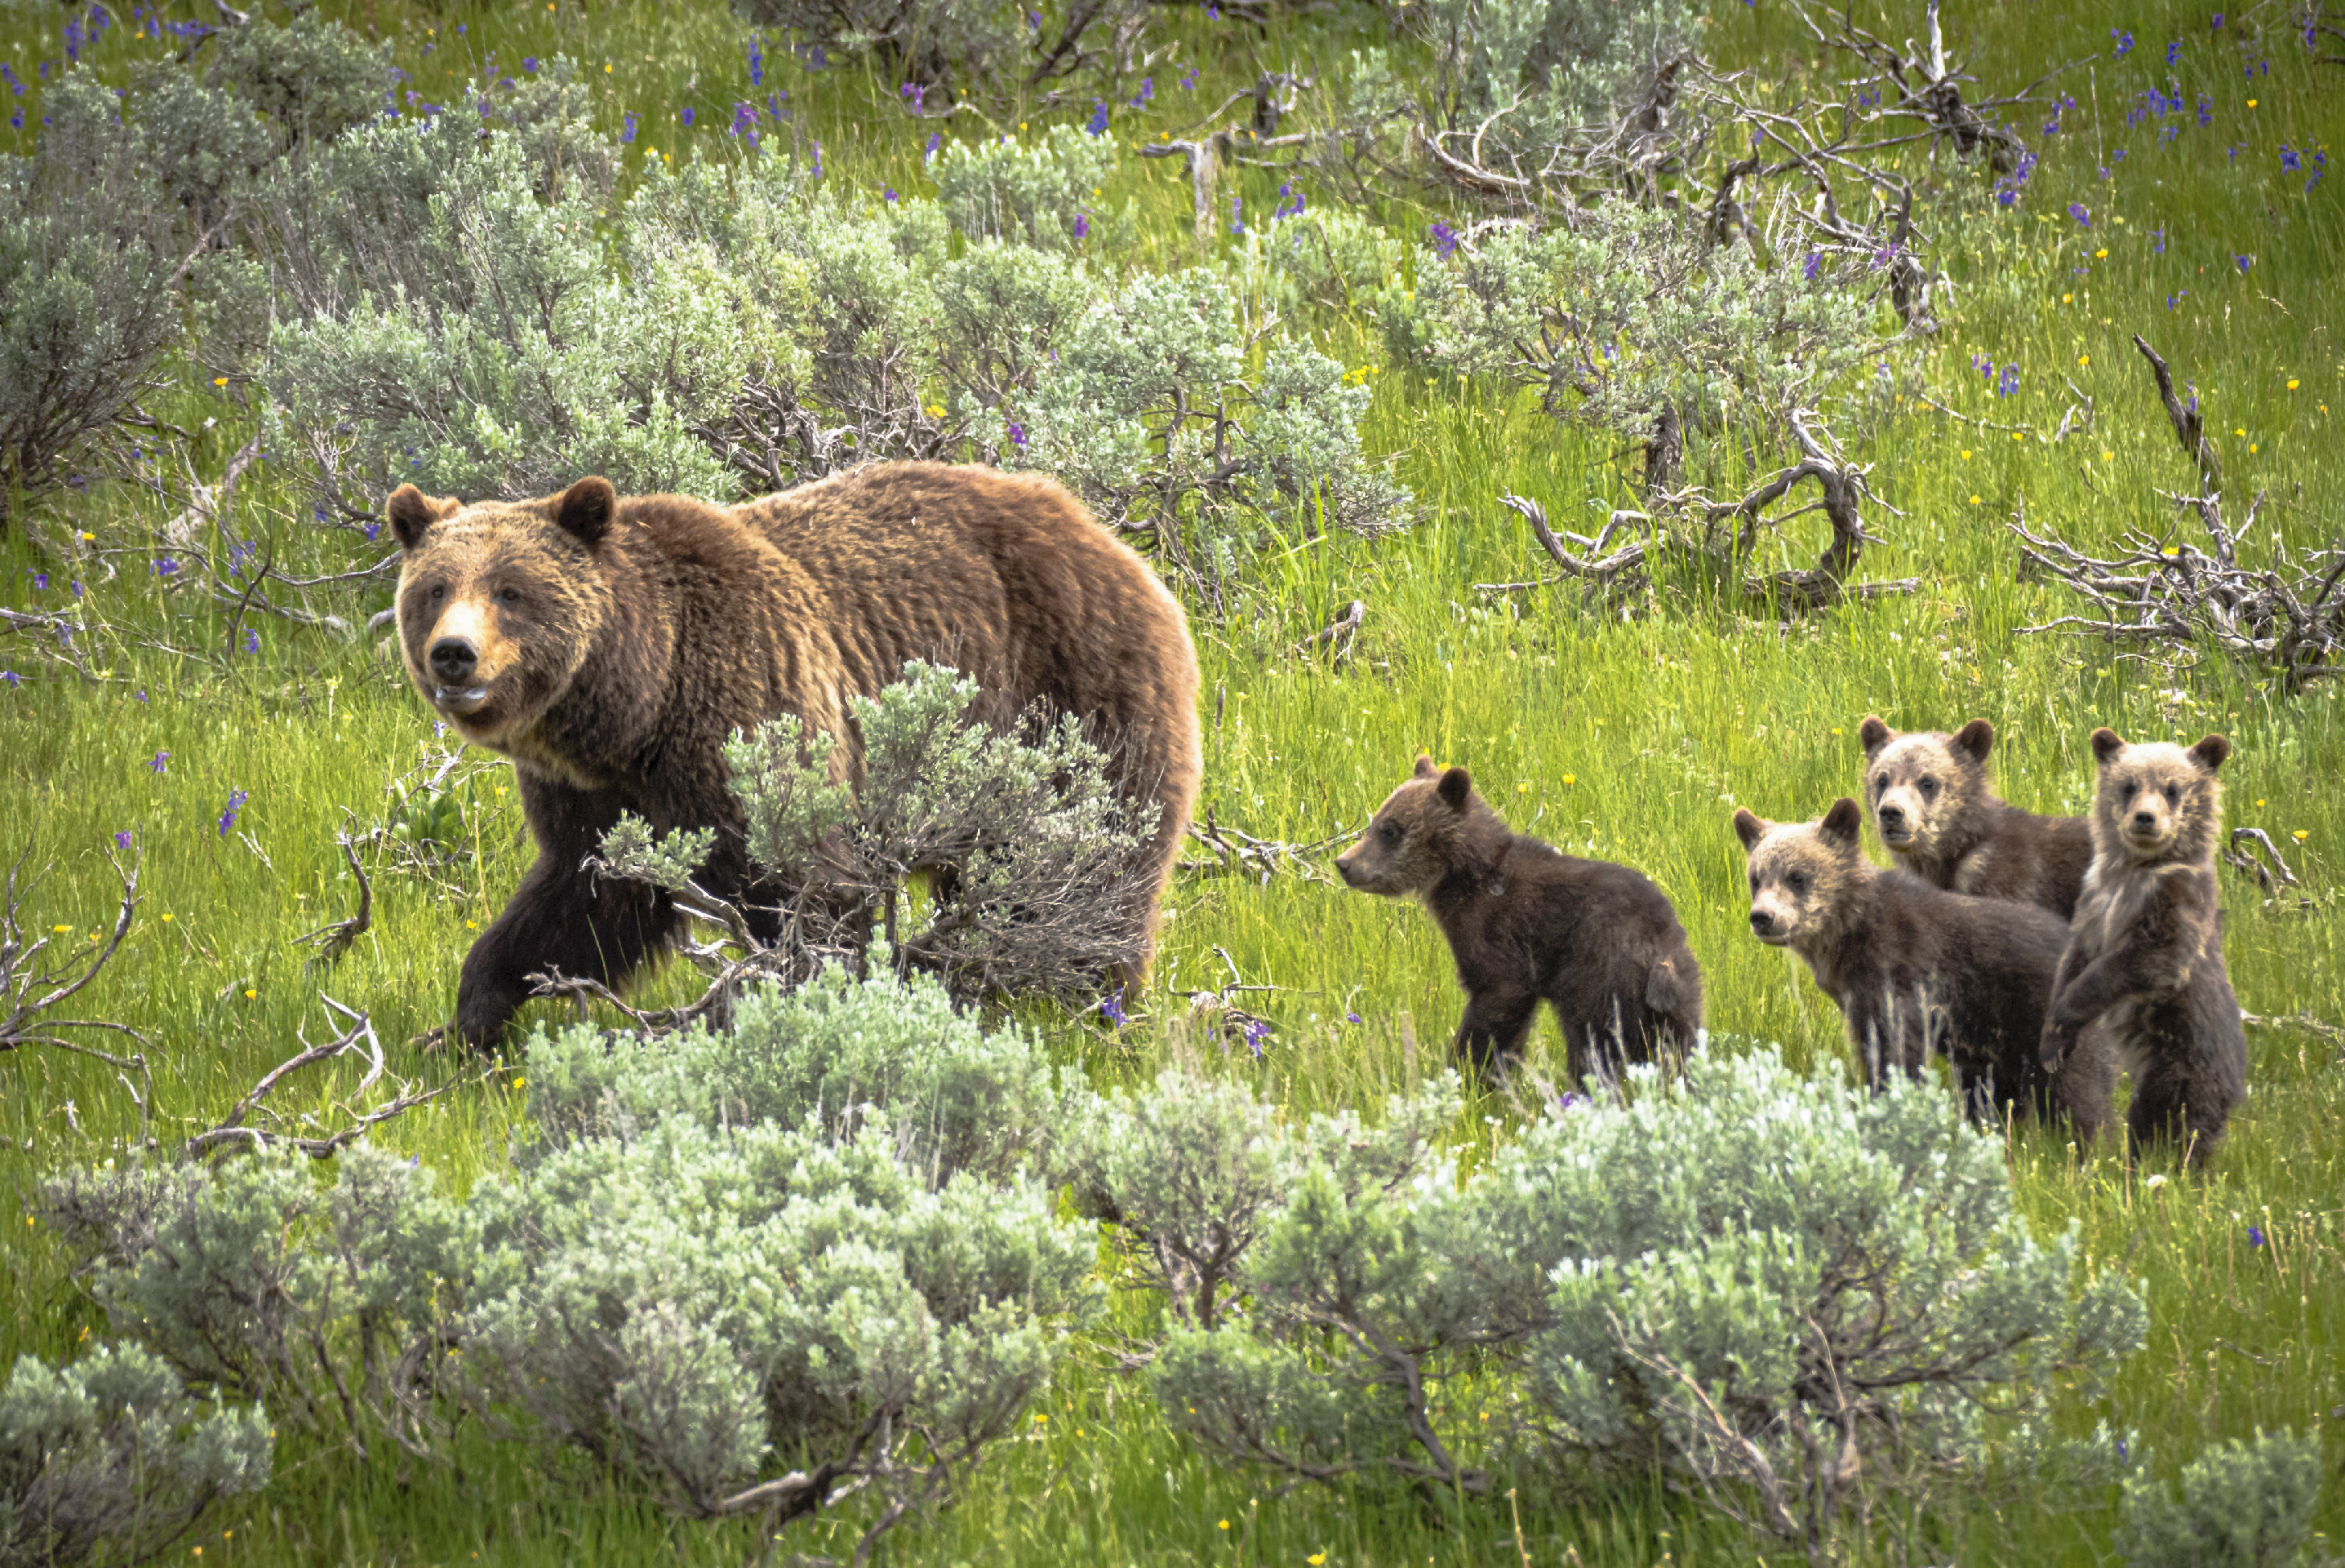 grizzly bear and cubs in yellowstone national park